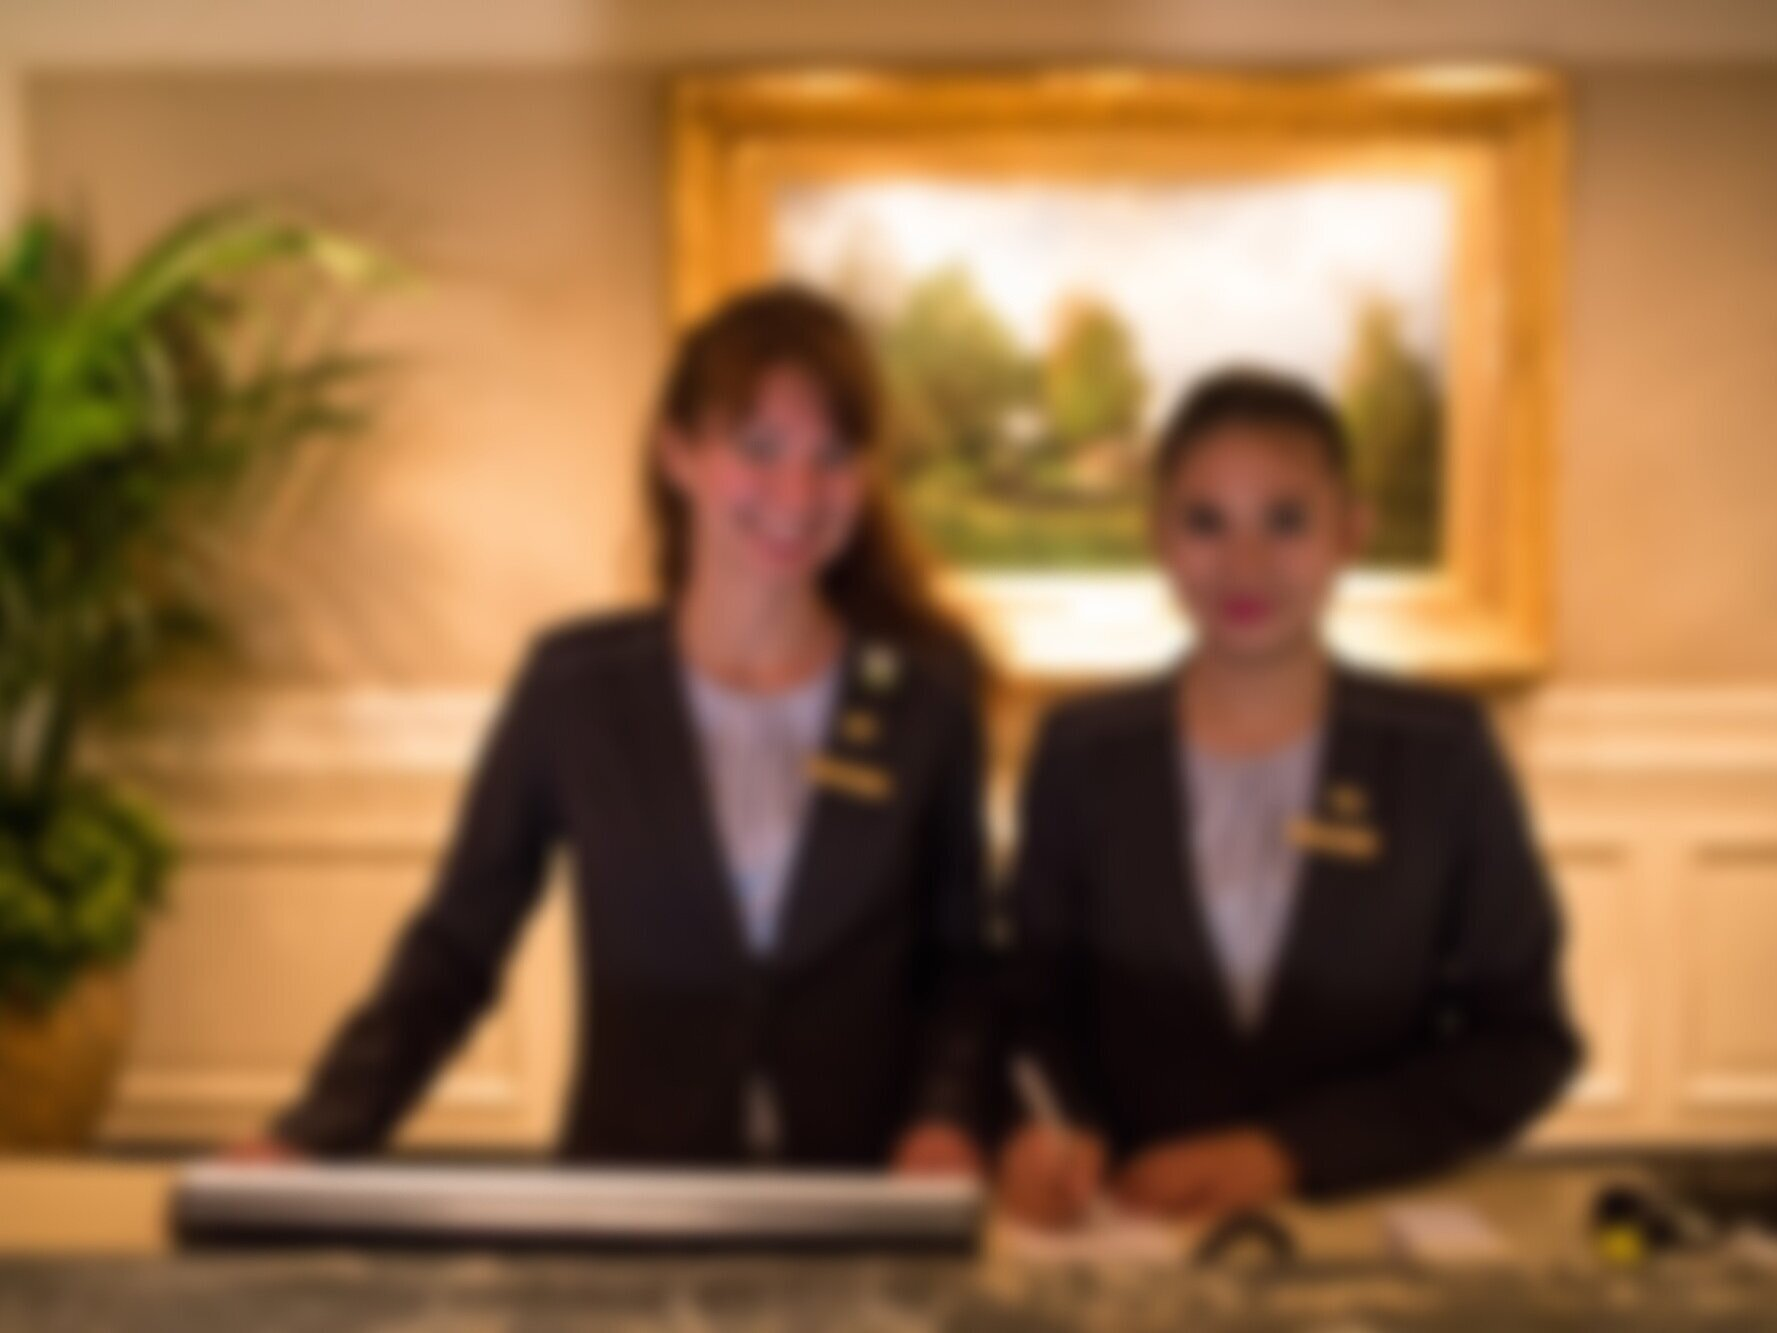 Greater New Orleans Hotel & Lodging Association - Faces of Hospitality Campaign